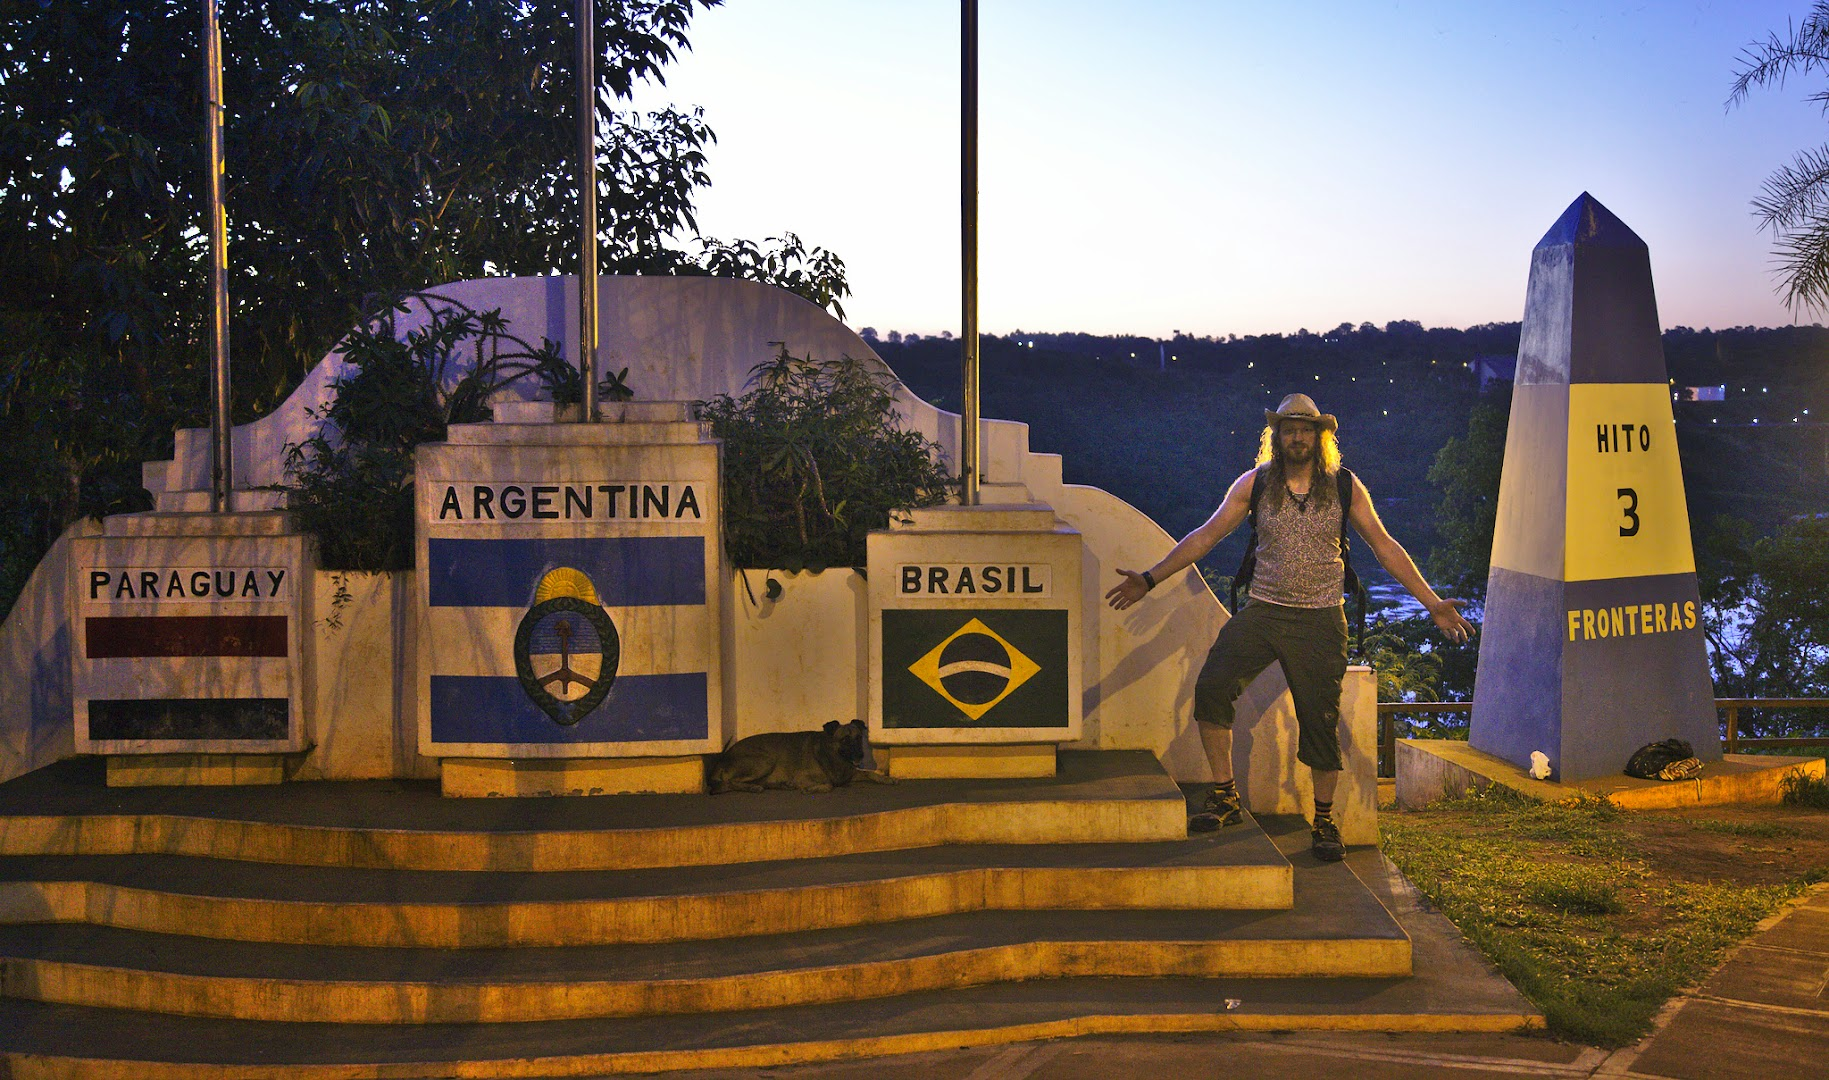 Argentina and Brazil are famous for the views of the falls here, but Paraguay is where everyone goes for cheap electronics (reduced taxes)